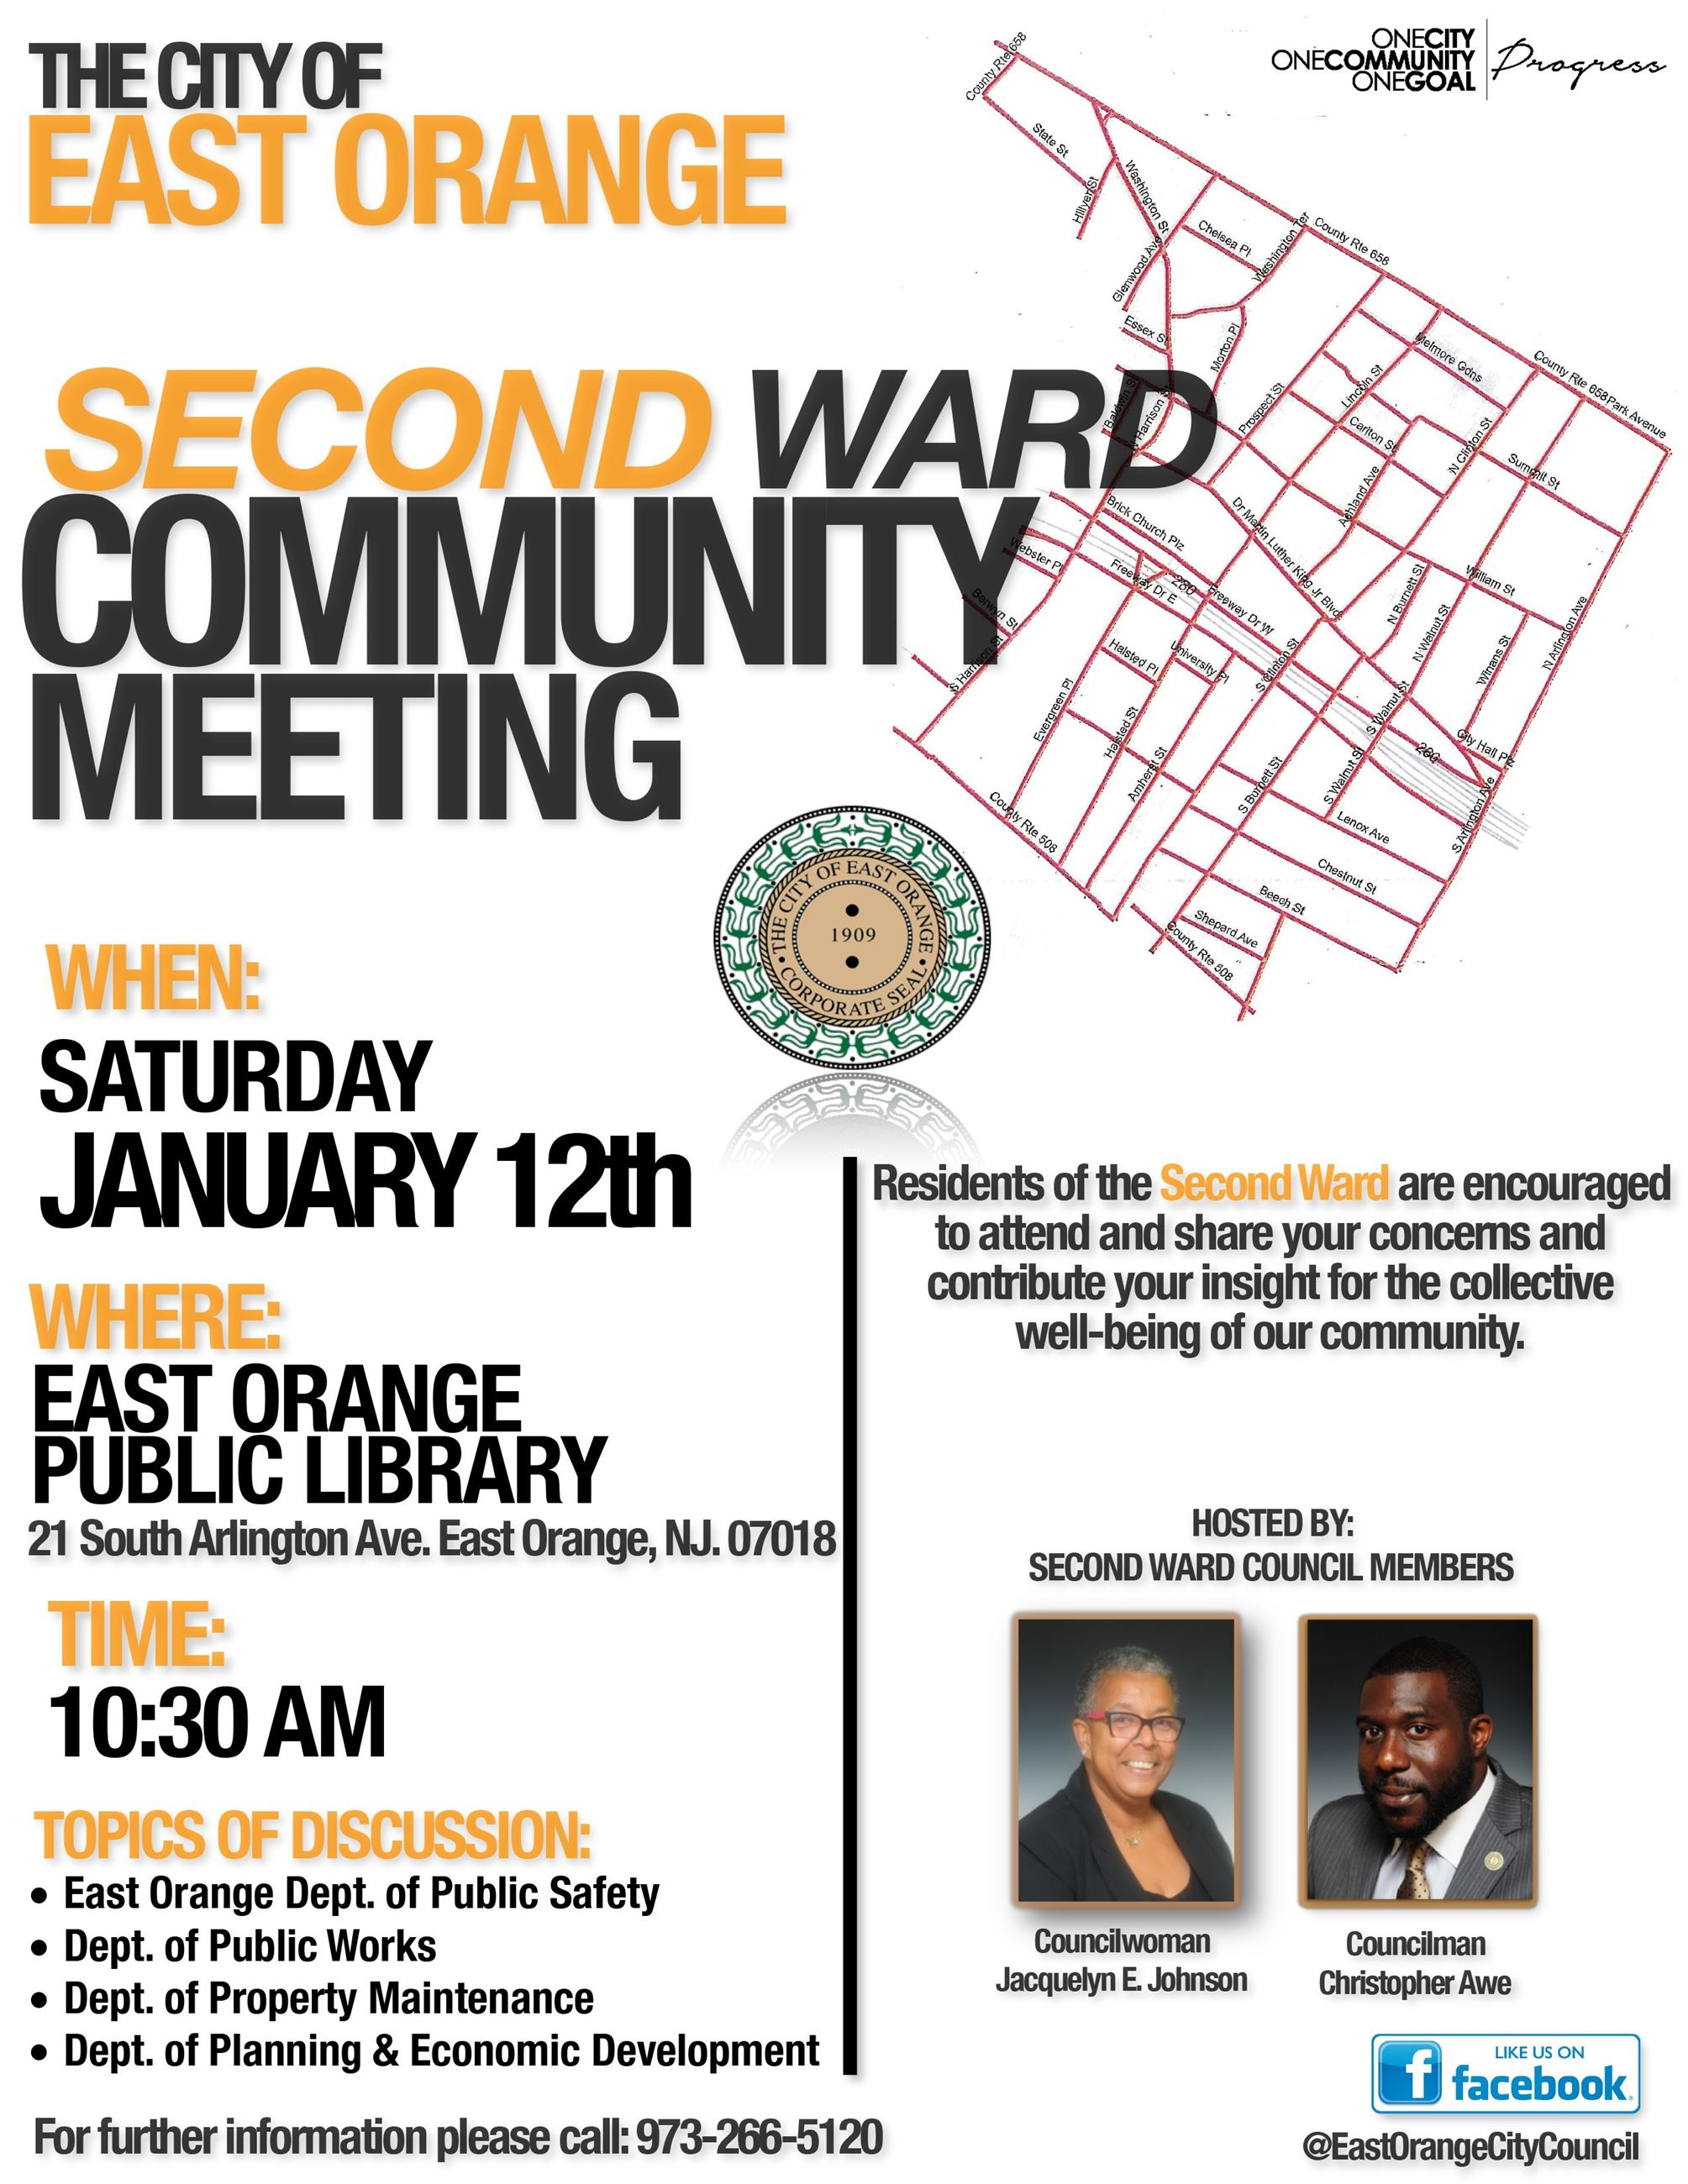 2nd ward community meeting